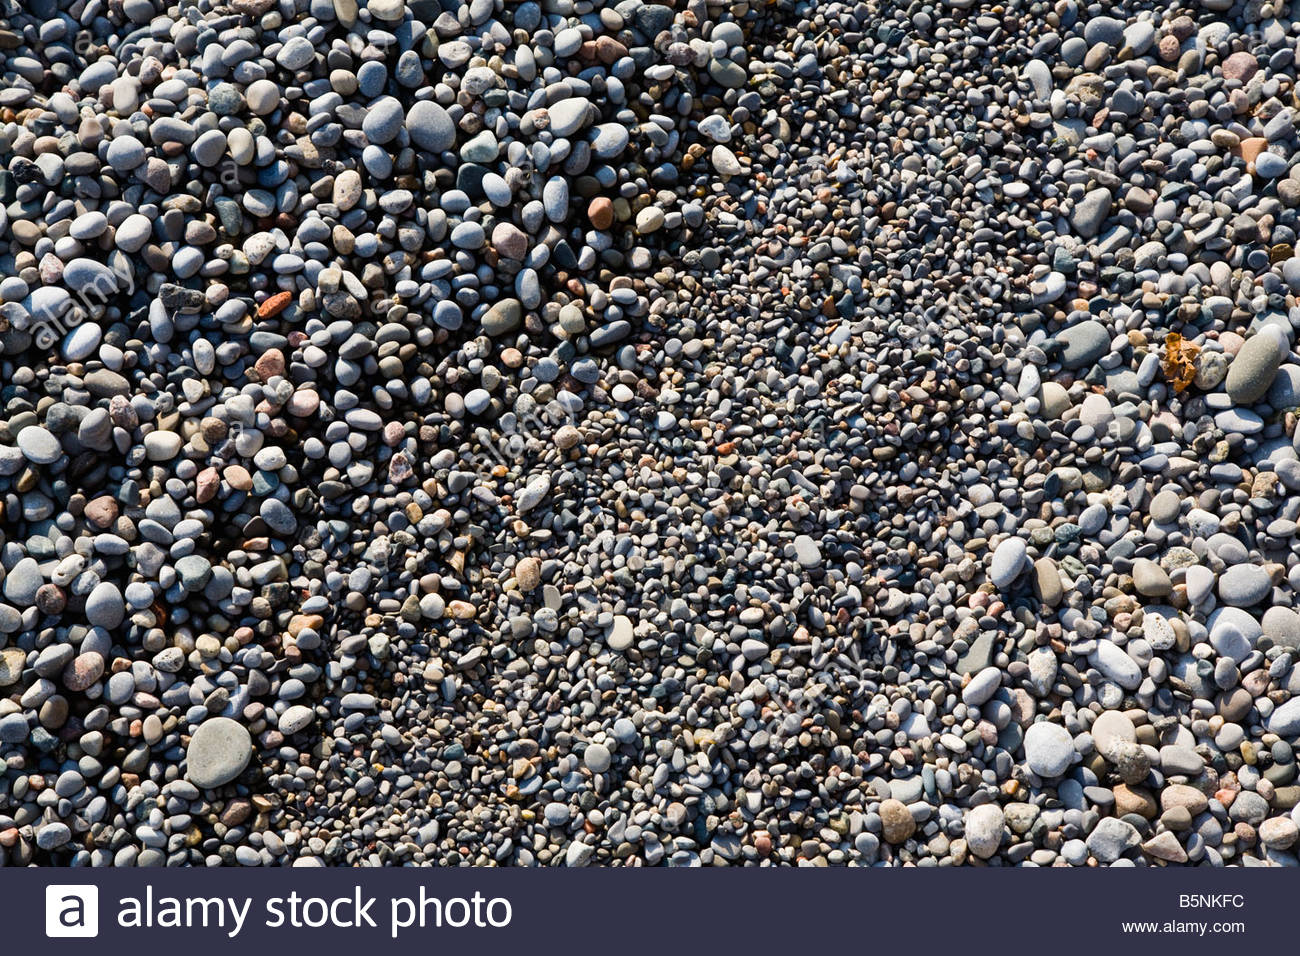 Shingle Beach of small rounded pebbles at the base of the Scarborough Bluffs in Toronto Ontario Canada - Stock Image